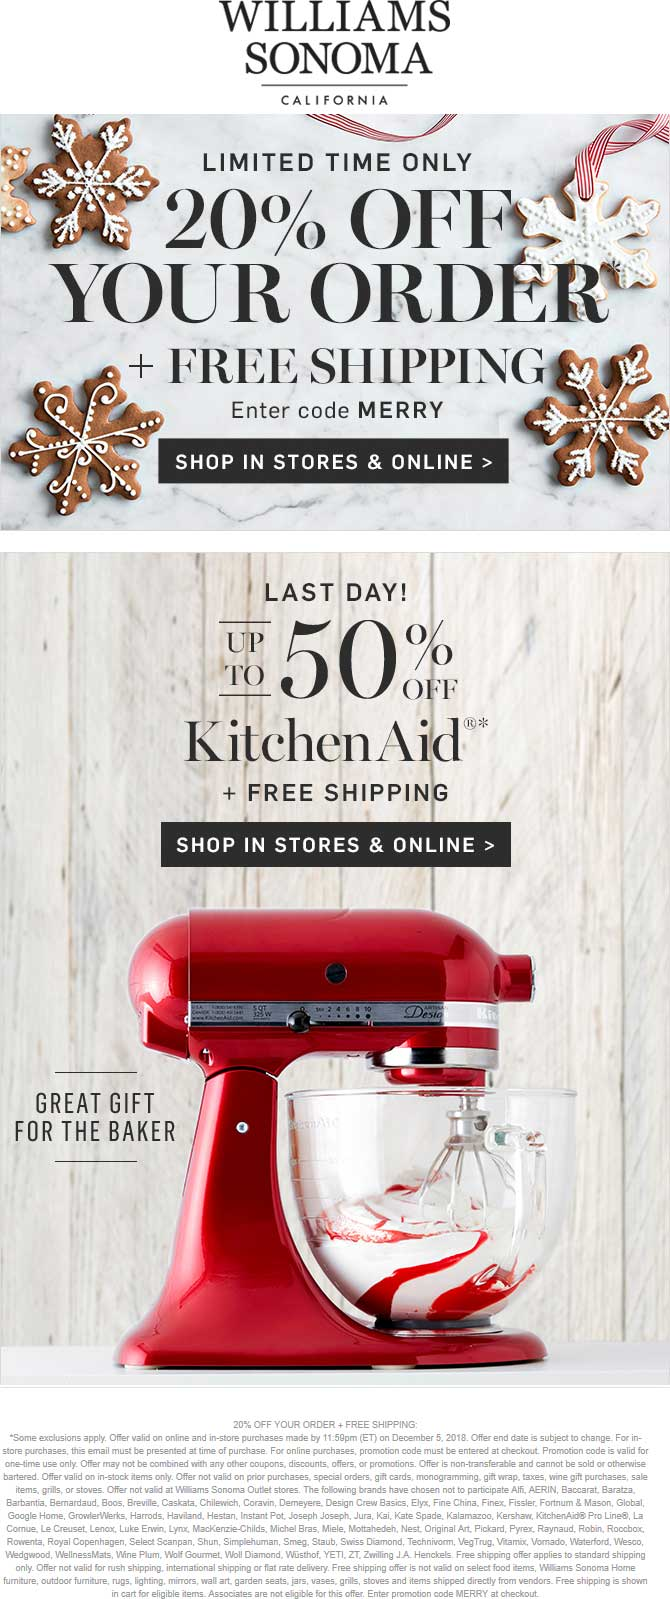 Williams Sonoma Coupon August 2019 20% off at Williams Sonoma, or online via promo code MERRY